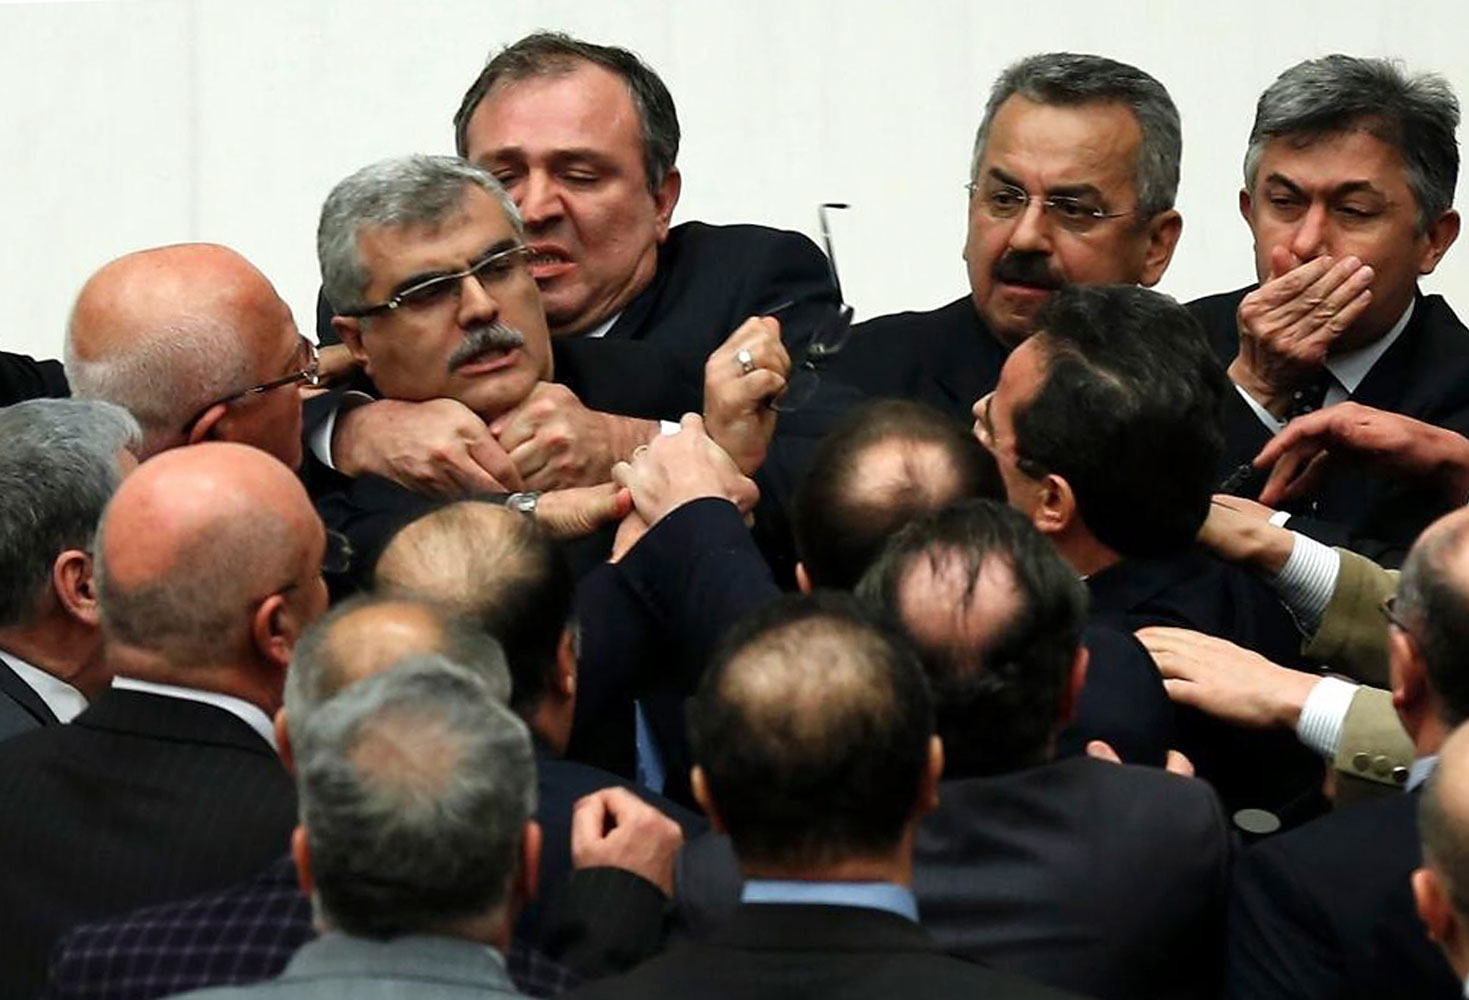 Turkish legislators from Prime Minister Recep Tayyip Erdogan's ruling party and the main opposition Republican People's Party brawl during a tense all-night debate over a controversial law on changes to a council that appoints and overseas judges and prosecutors, in Ankara, early Saturday, Feb. 15, 2014.